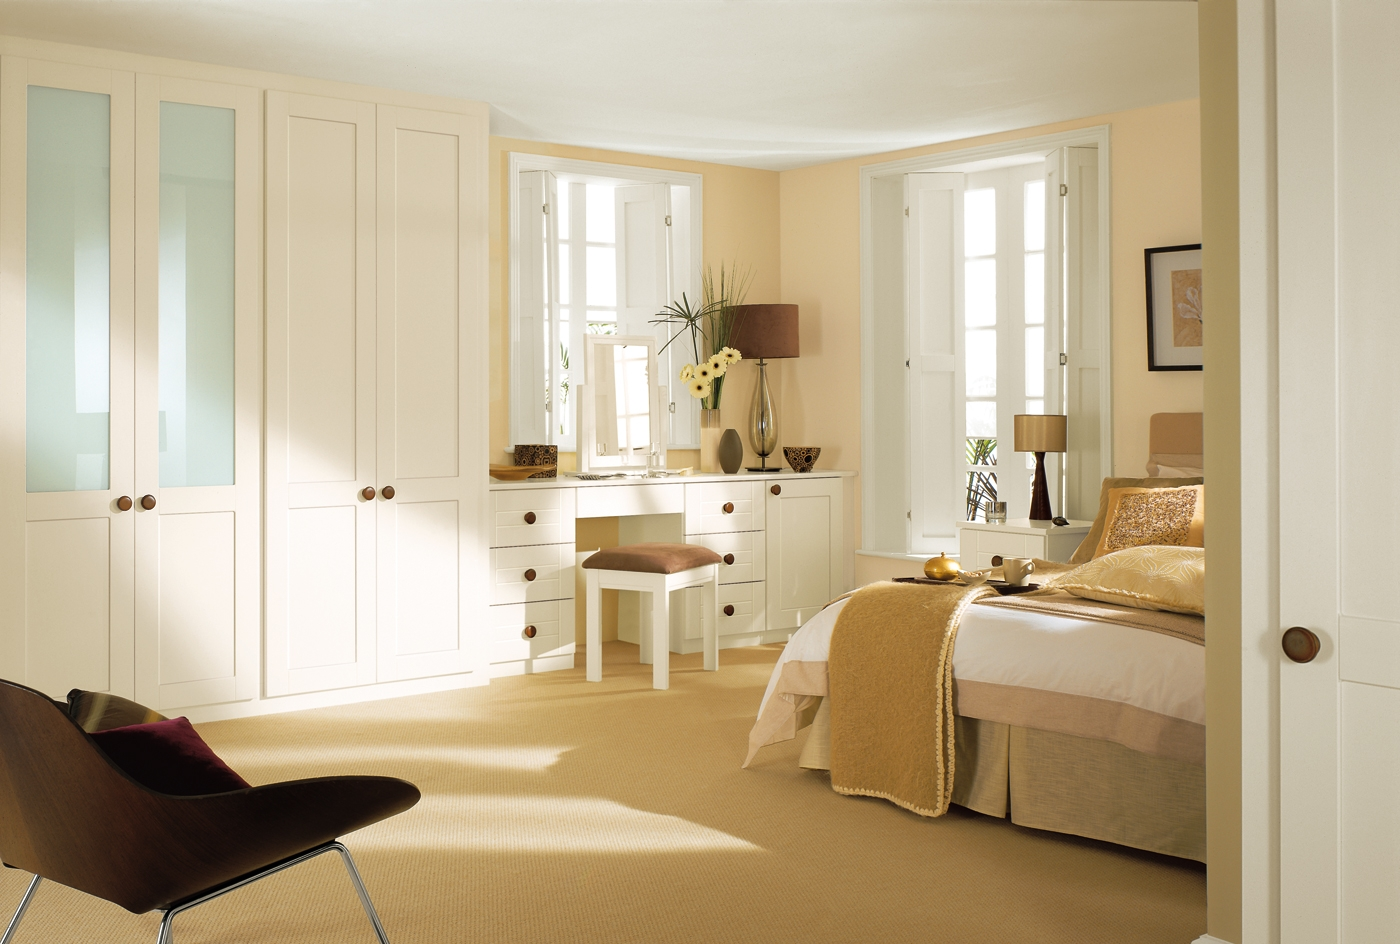 Bedroom Great Bed Room Interior Plan Decoration With Cupboards With Regard To Table Cupboards (Image 5 of 25)